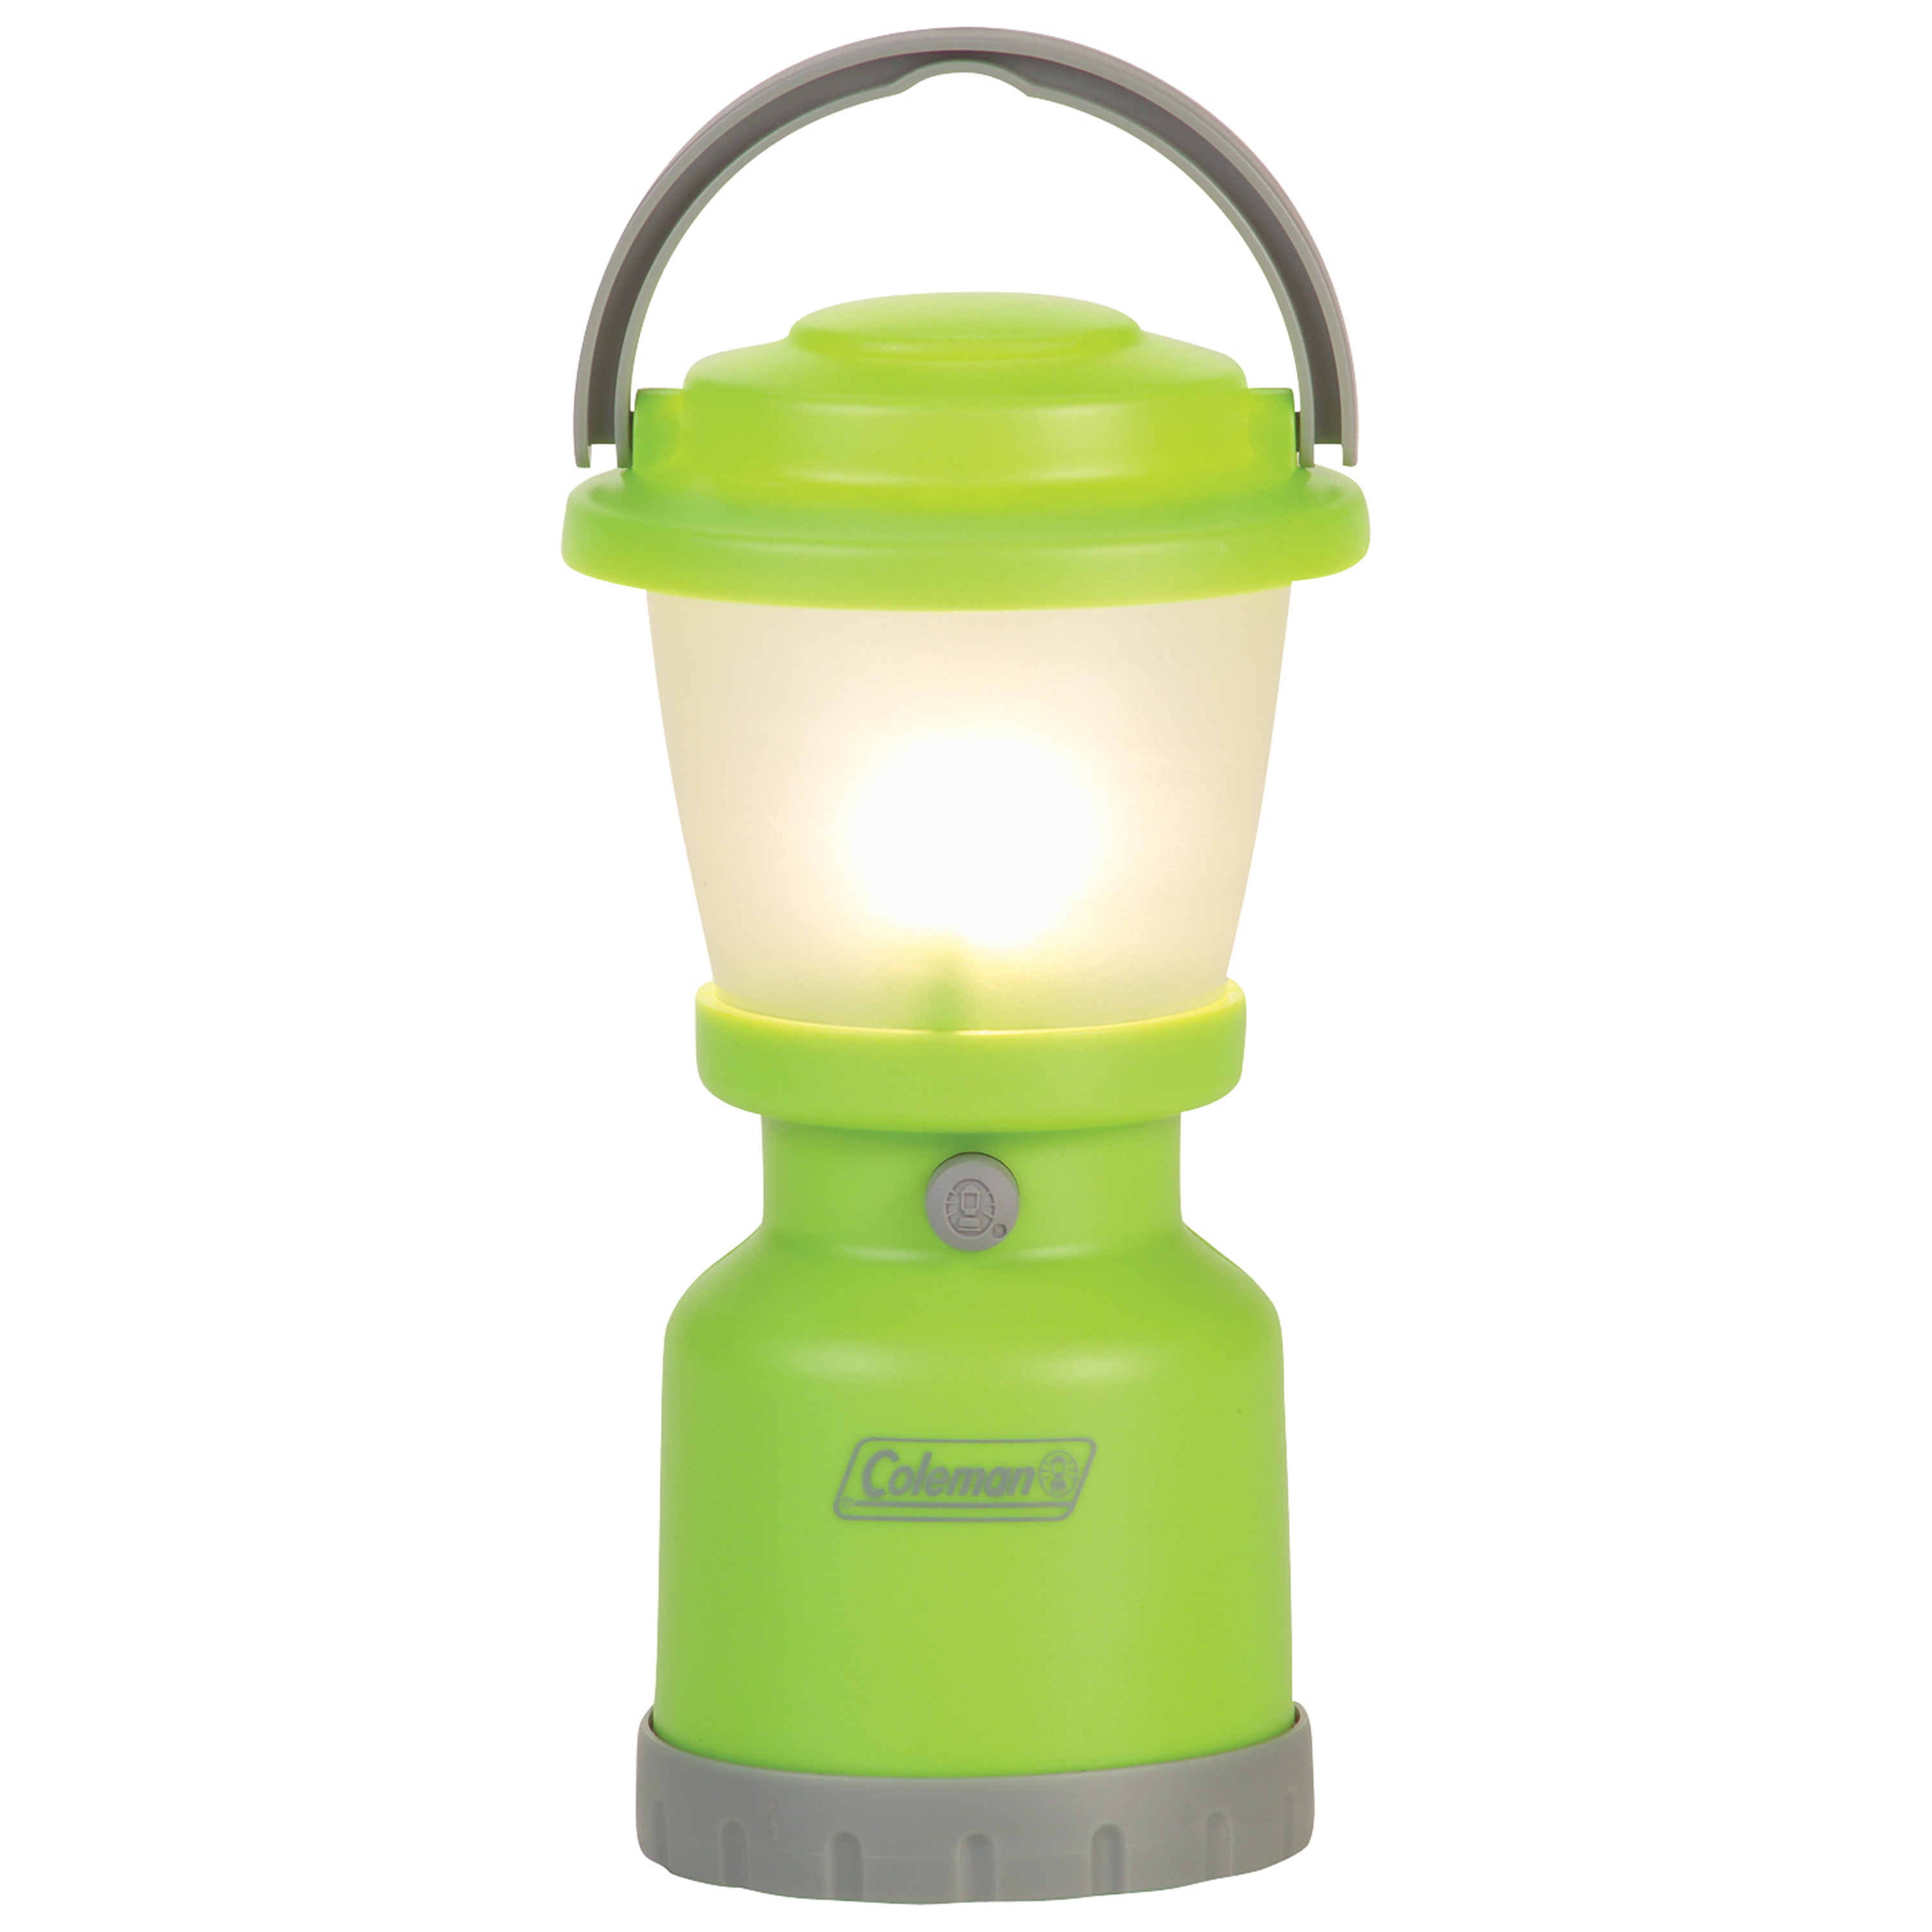 coleman 4aa led camp lantern lime. Black Bedroom Furniture Sets. Home Design Ideas